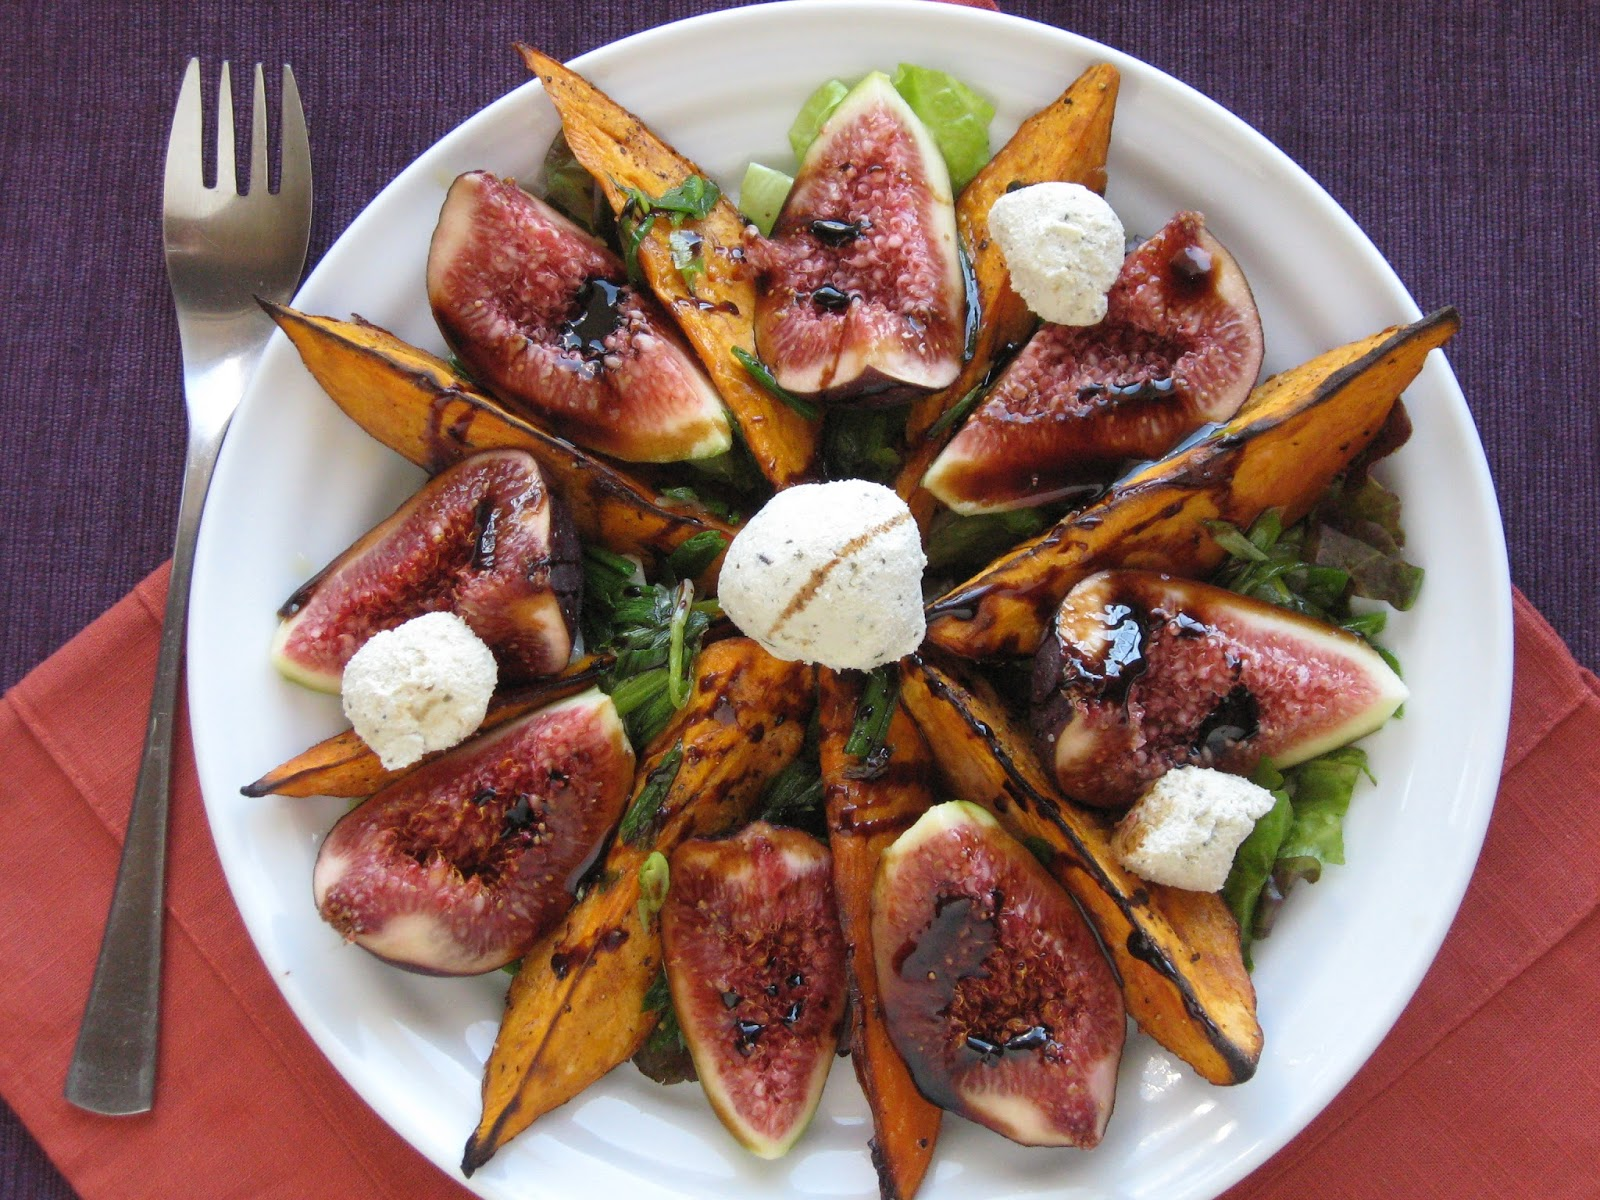 VeganForOne: Roasted Figs and Sweet Potatoes for One